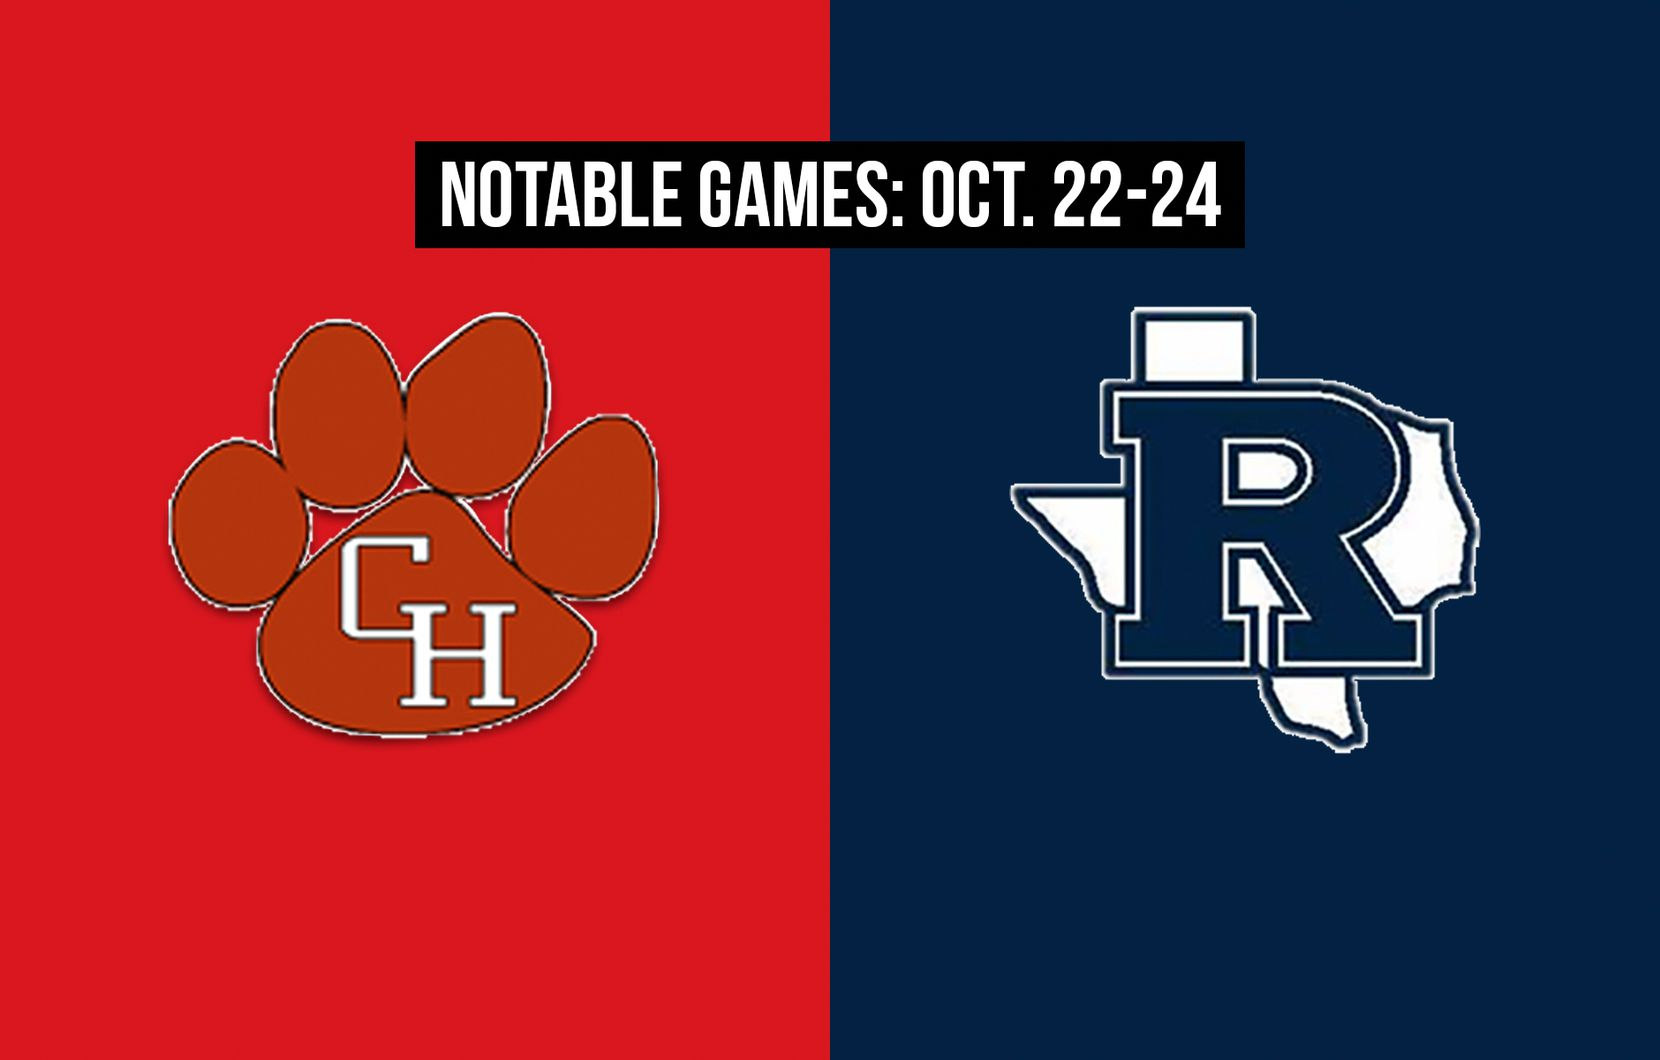 Notable games for the week of Oct. 22-24 of the 2020 season: Colleyville Heritage vs. Richland.